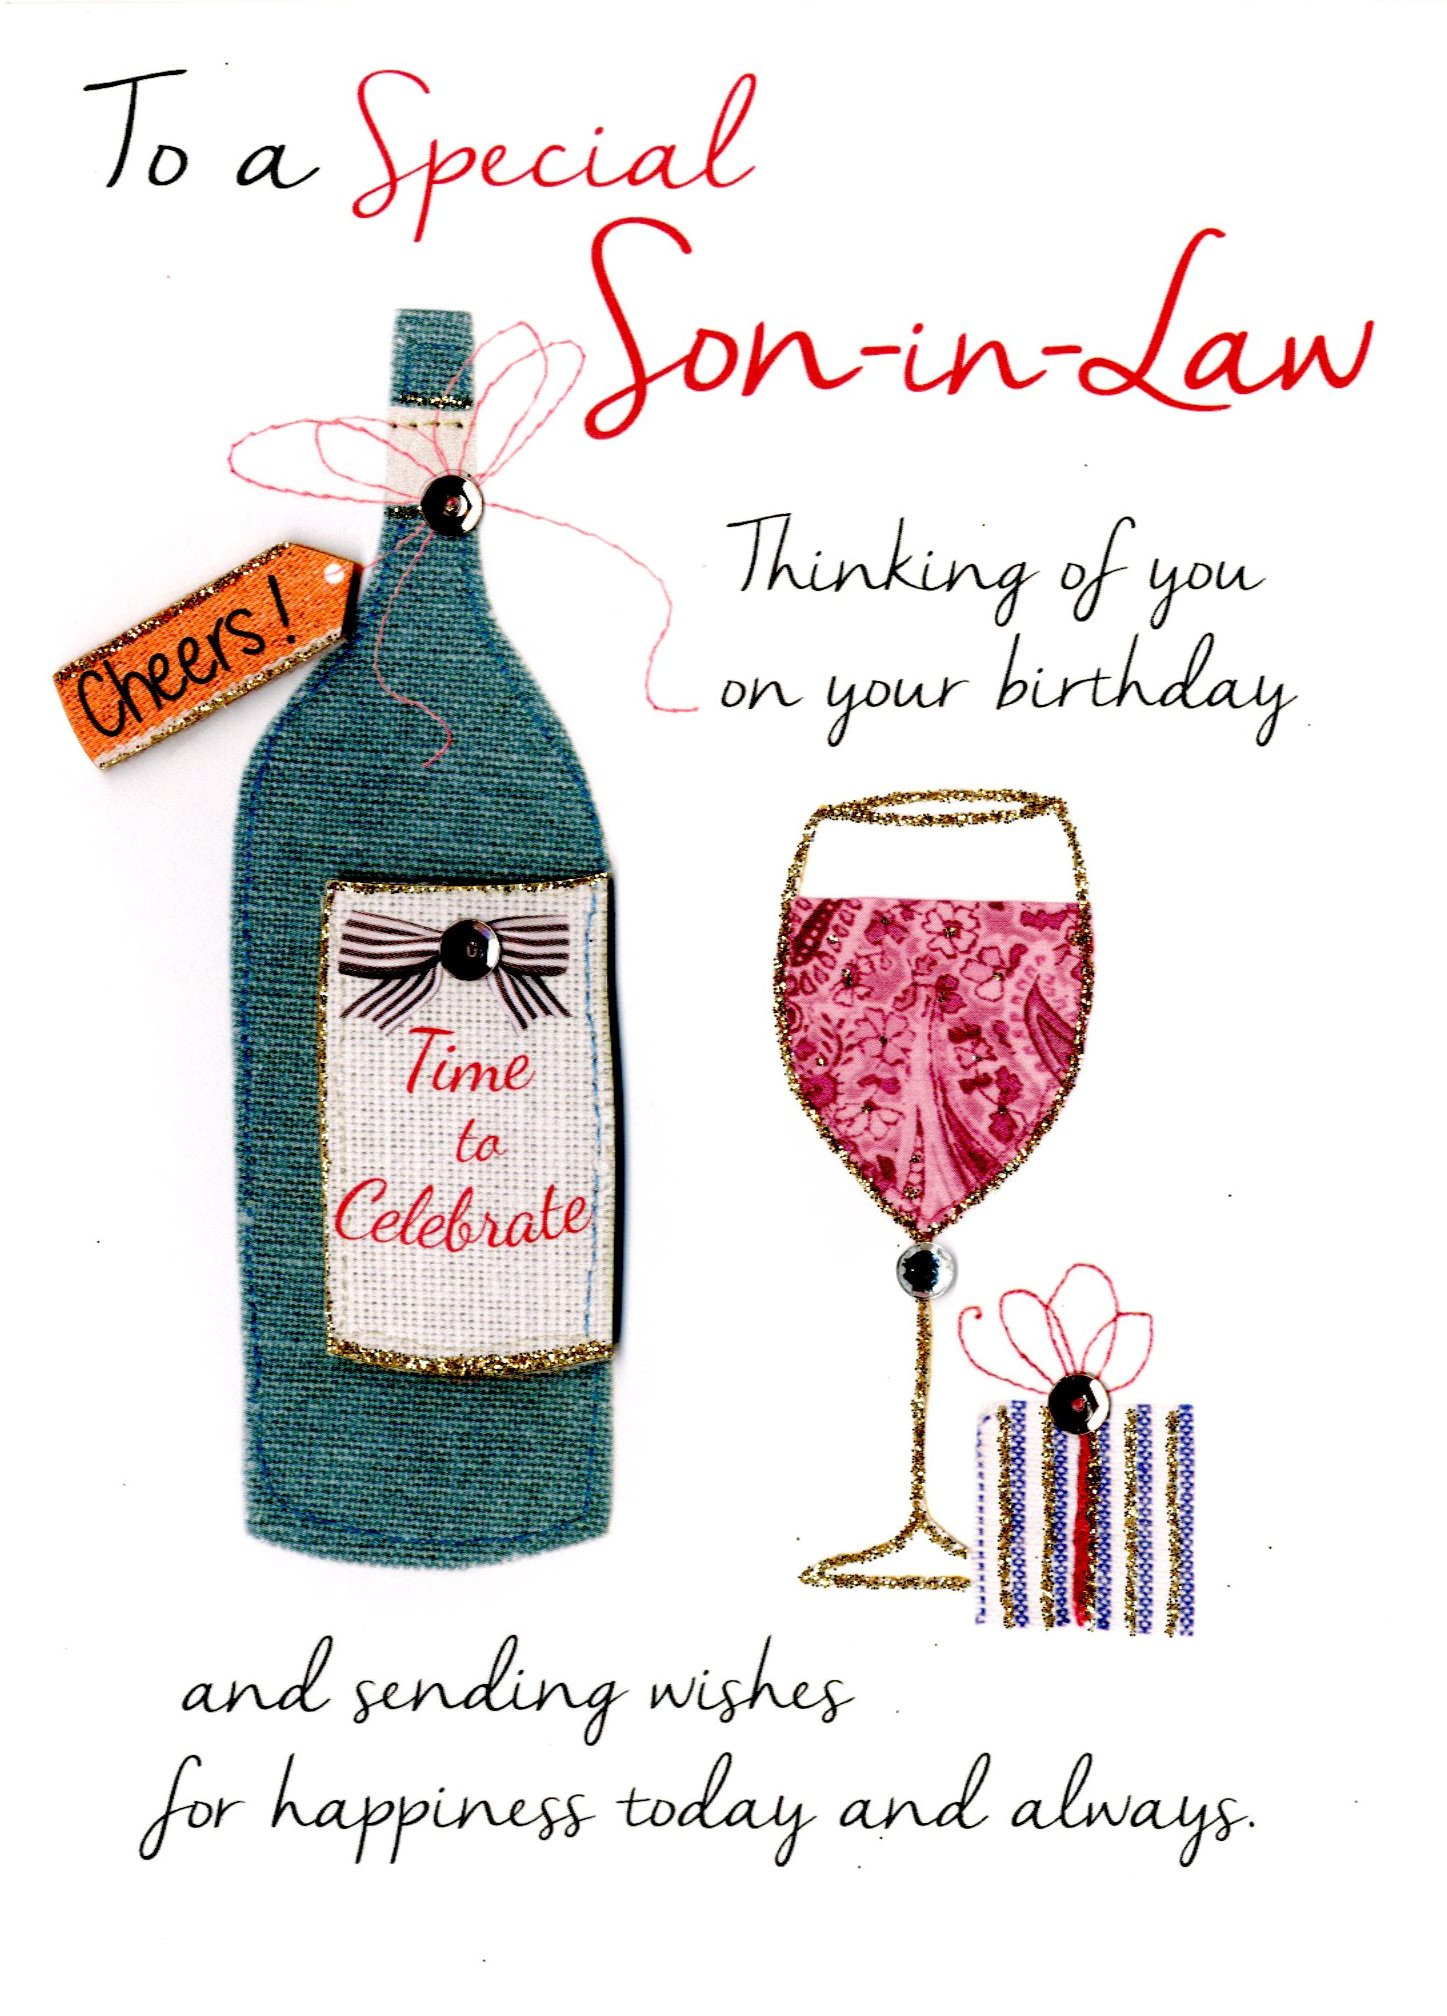 Best ideas about Son In Law Birthday Wishes . Save or Pin Special Son In Law Birthday Greeting Card Now.